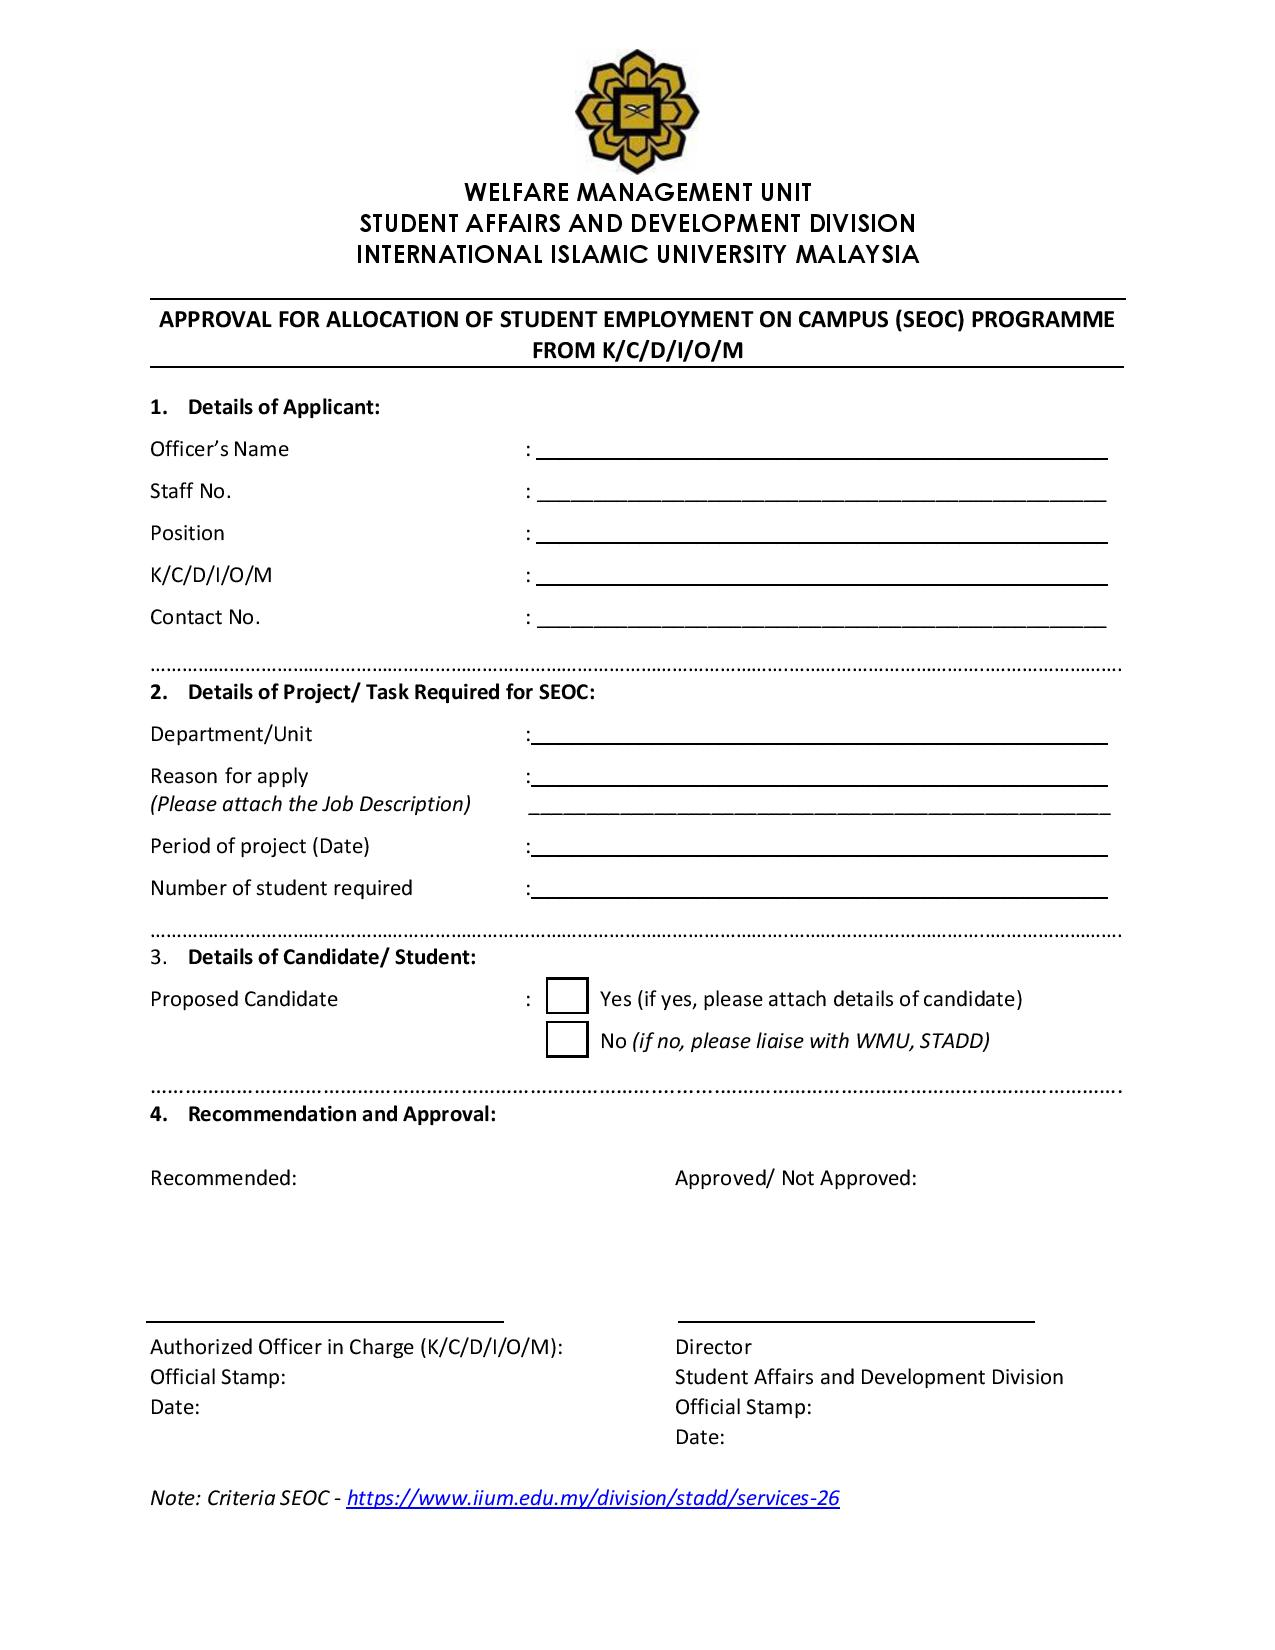 Request Student Employment on Campus Form (for K/C/D/I/O)